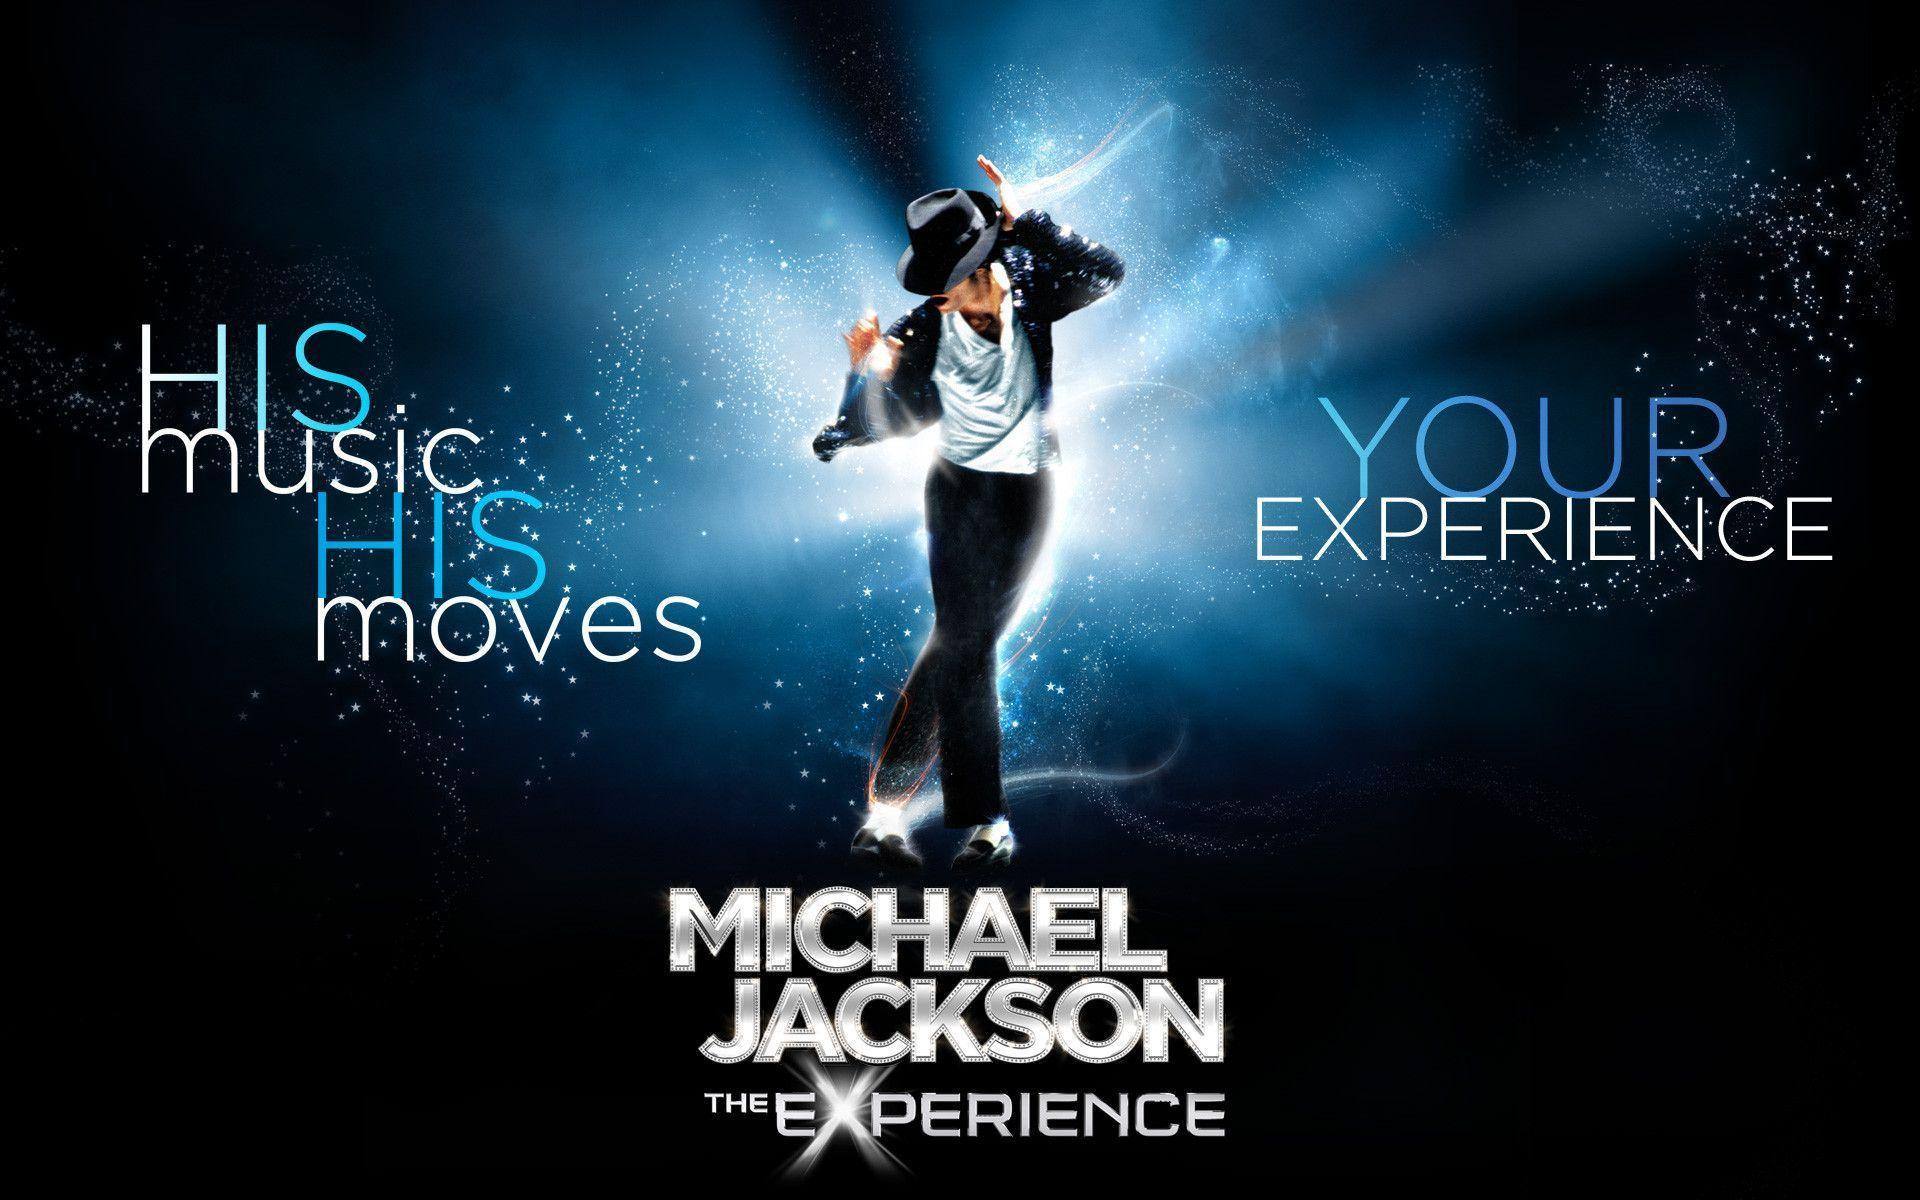 Michael Jackson The Experience Wallpapers   HD Wallpapers